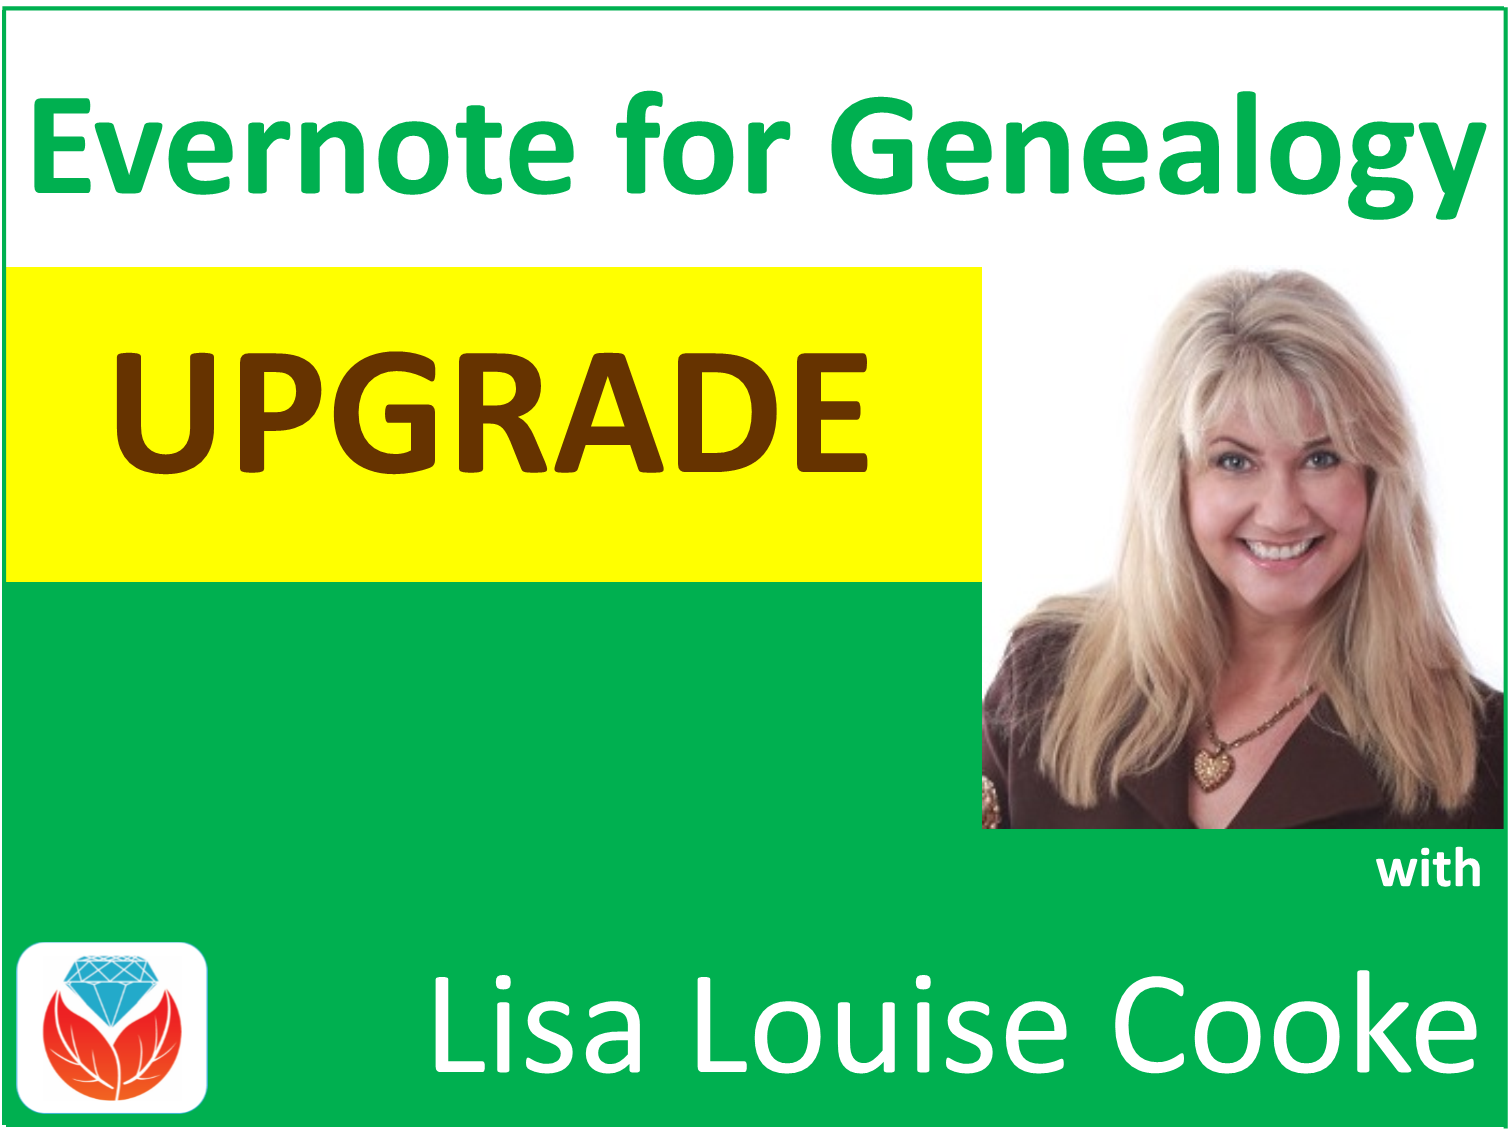 Evernote_Upgrade_Image